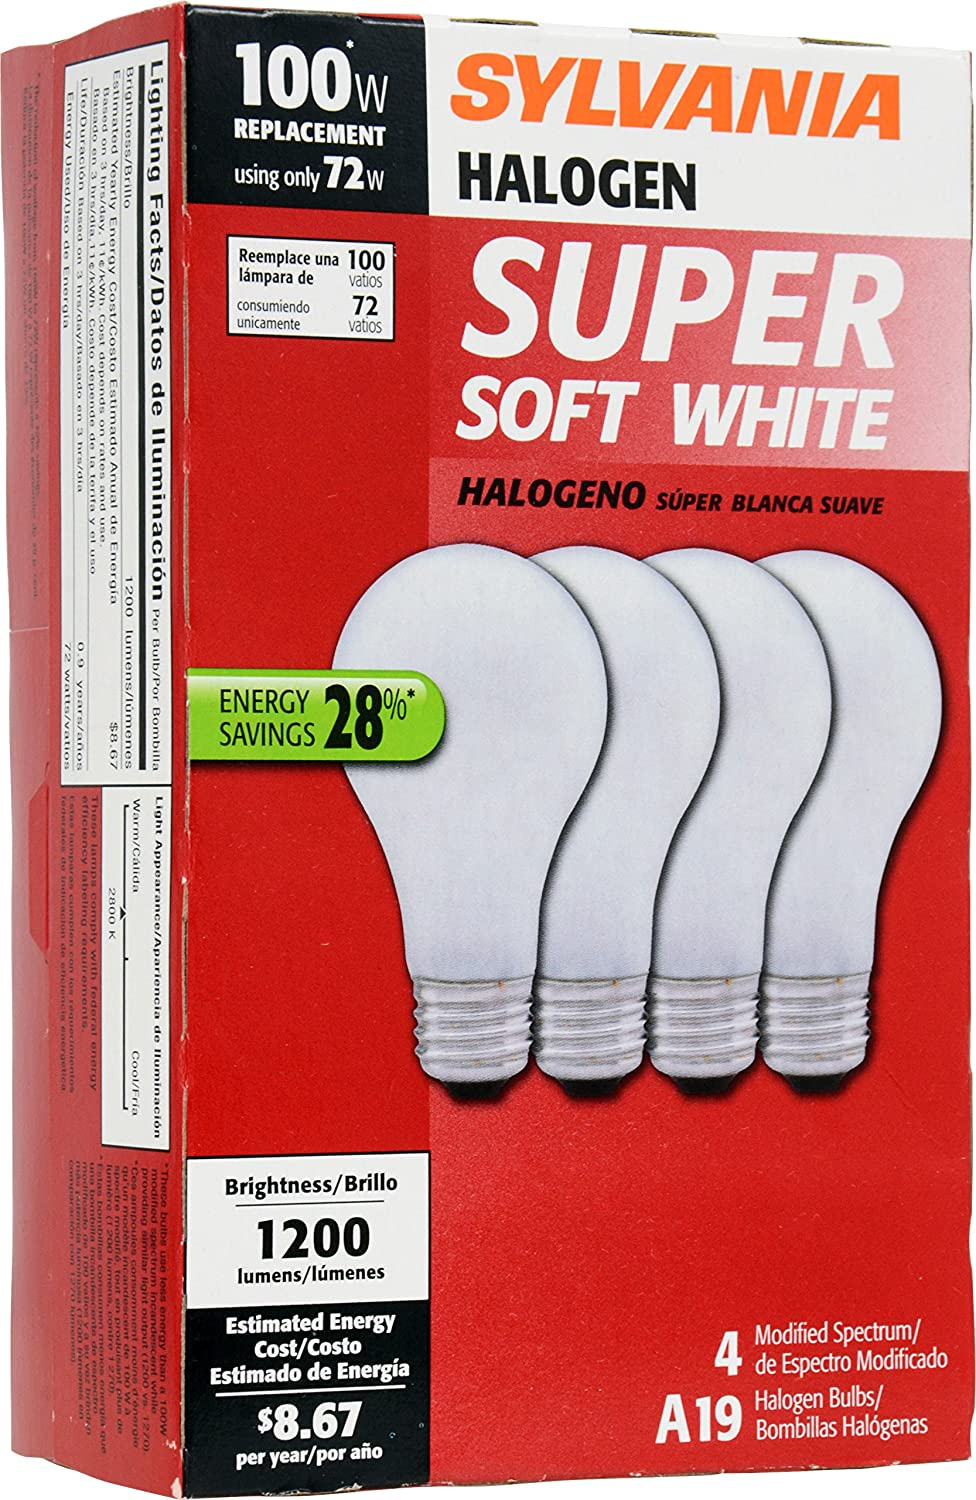 SYLVANIA Home Lighting 50006 Tungsten Halogen Bulb, A19-72W-2800K, Soft White Finish, Medium Base, Pack of 4 - - Amazon.com